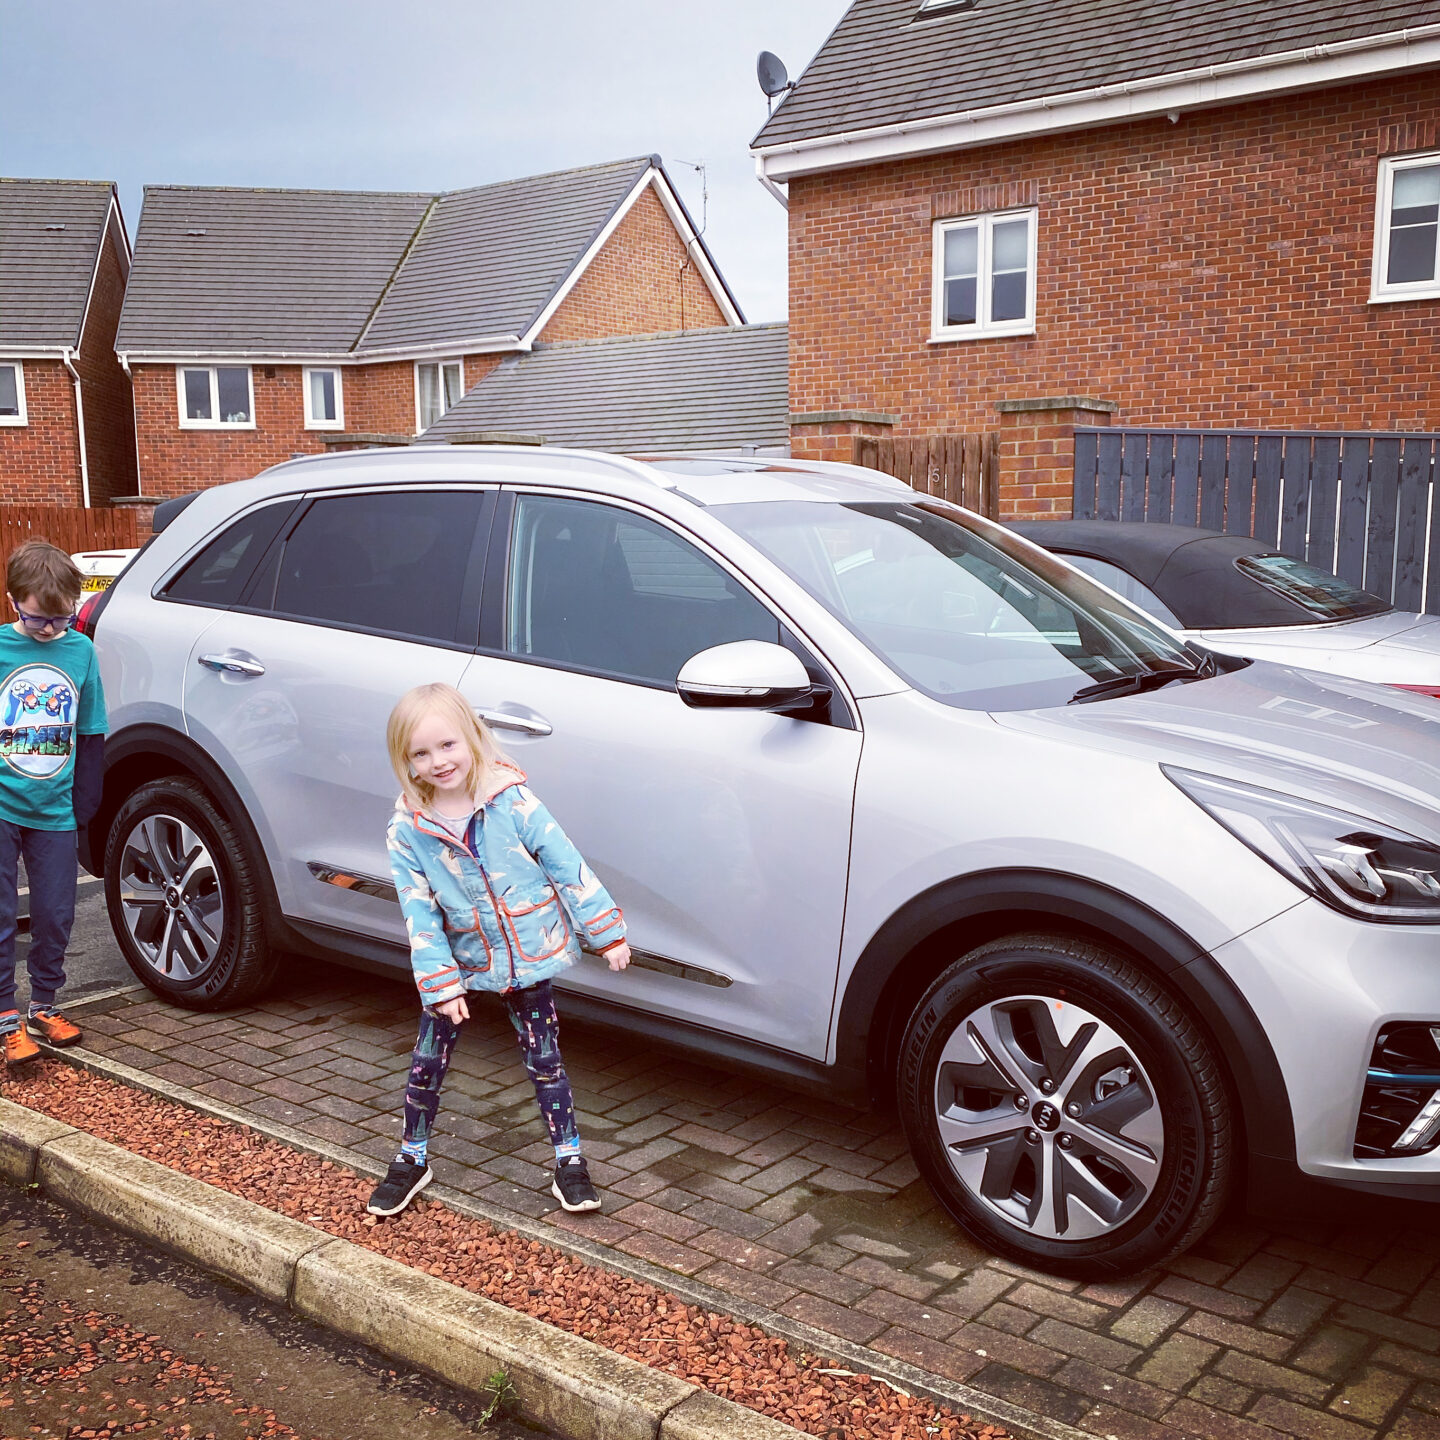 Children look happy around their new silver electric car